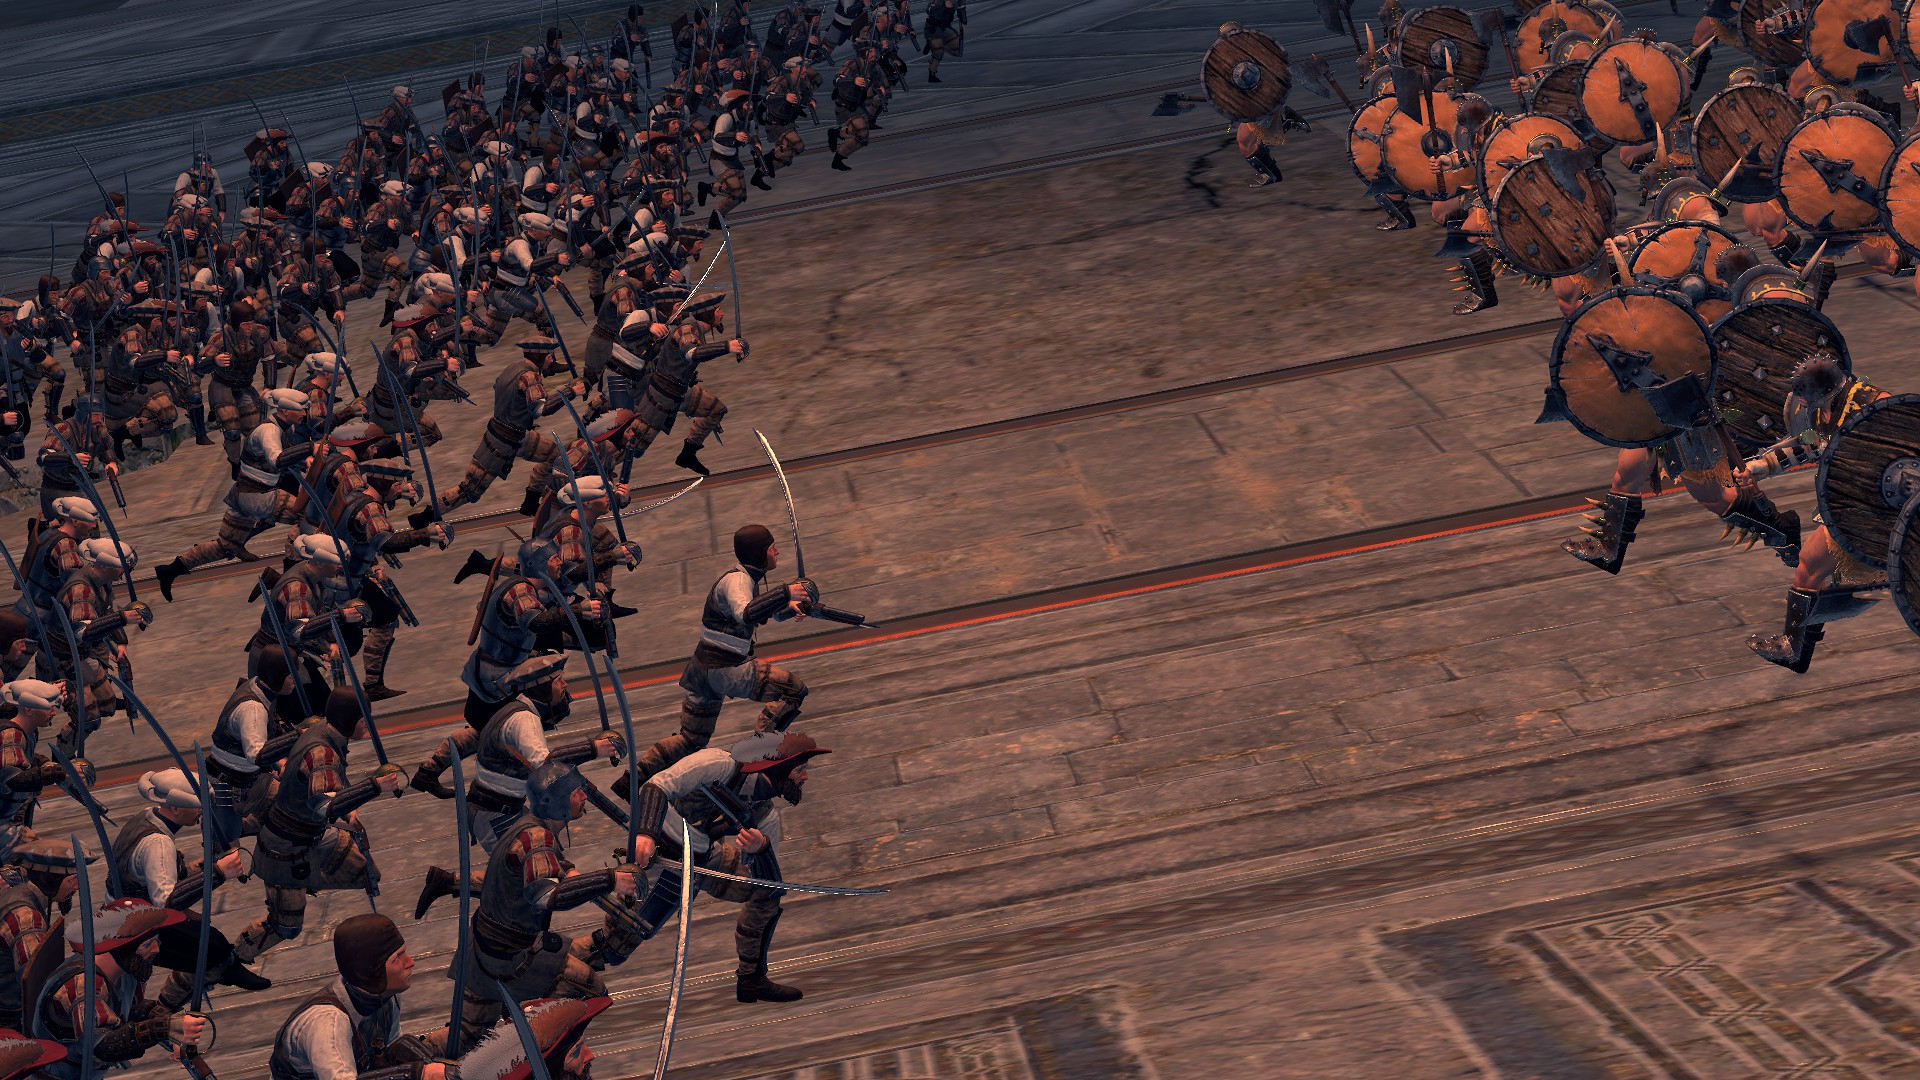 What happened to the Free Company Militia? — Total War Forums